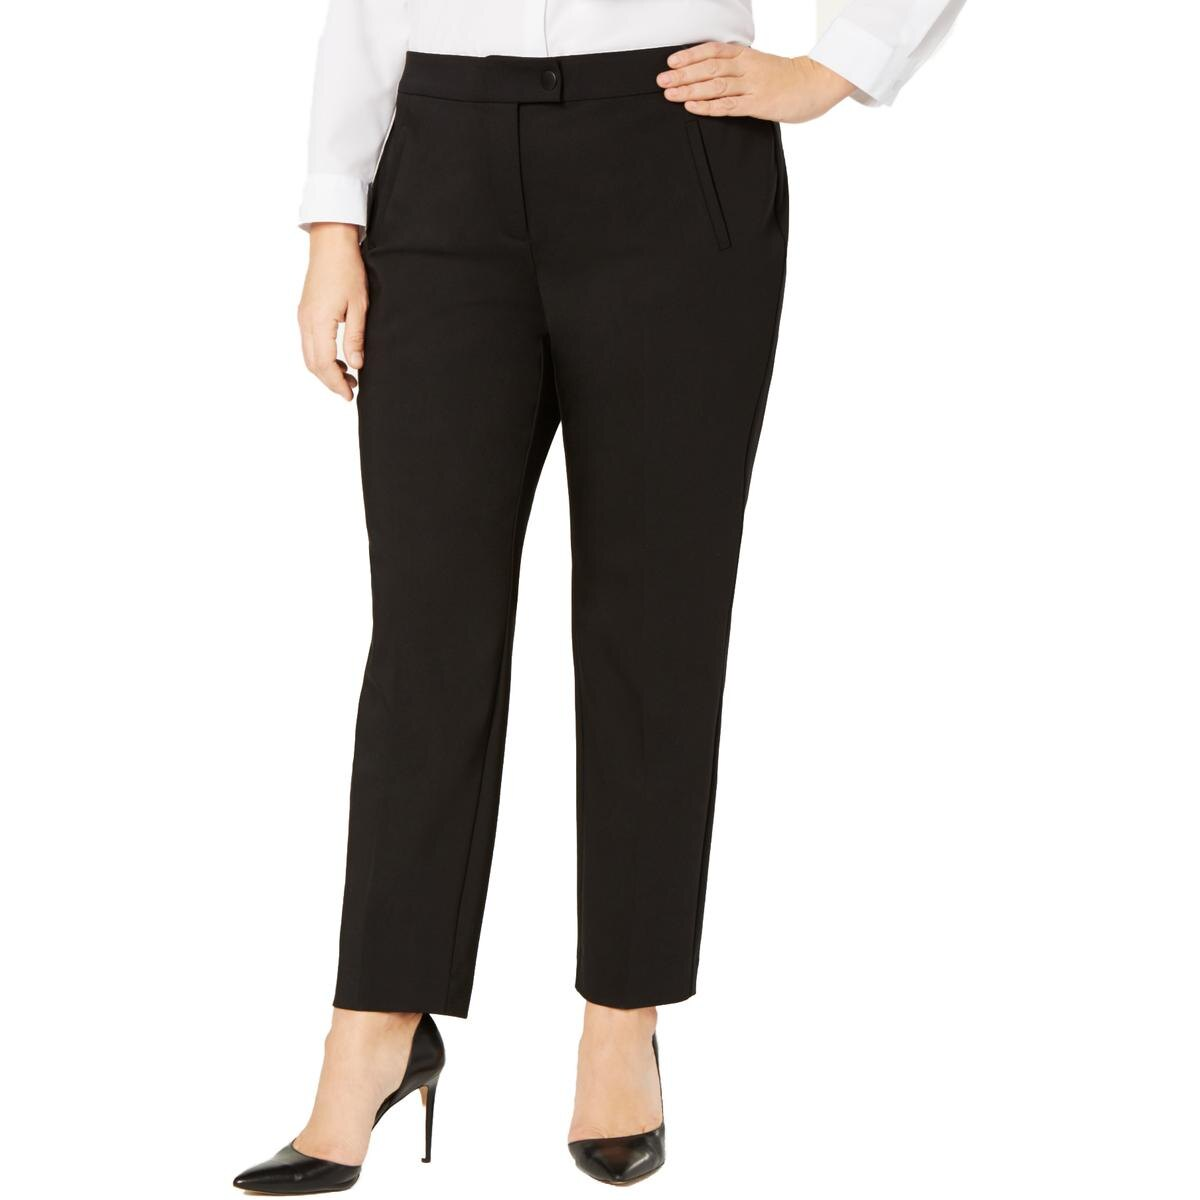 Alfani Womens Plus Slim Leg Tummy Control Dress Pants Plus Size